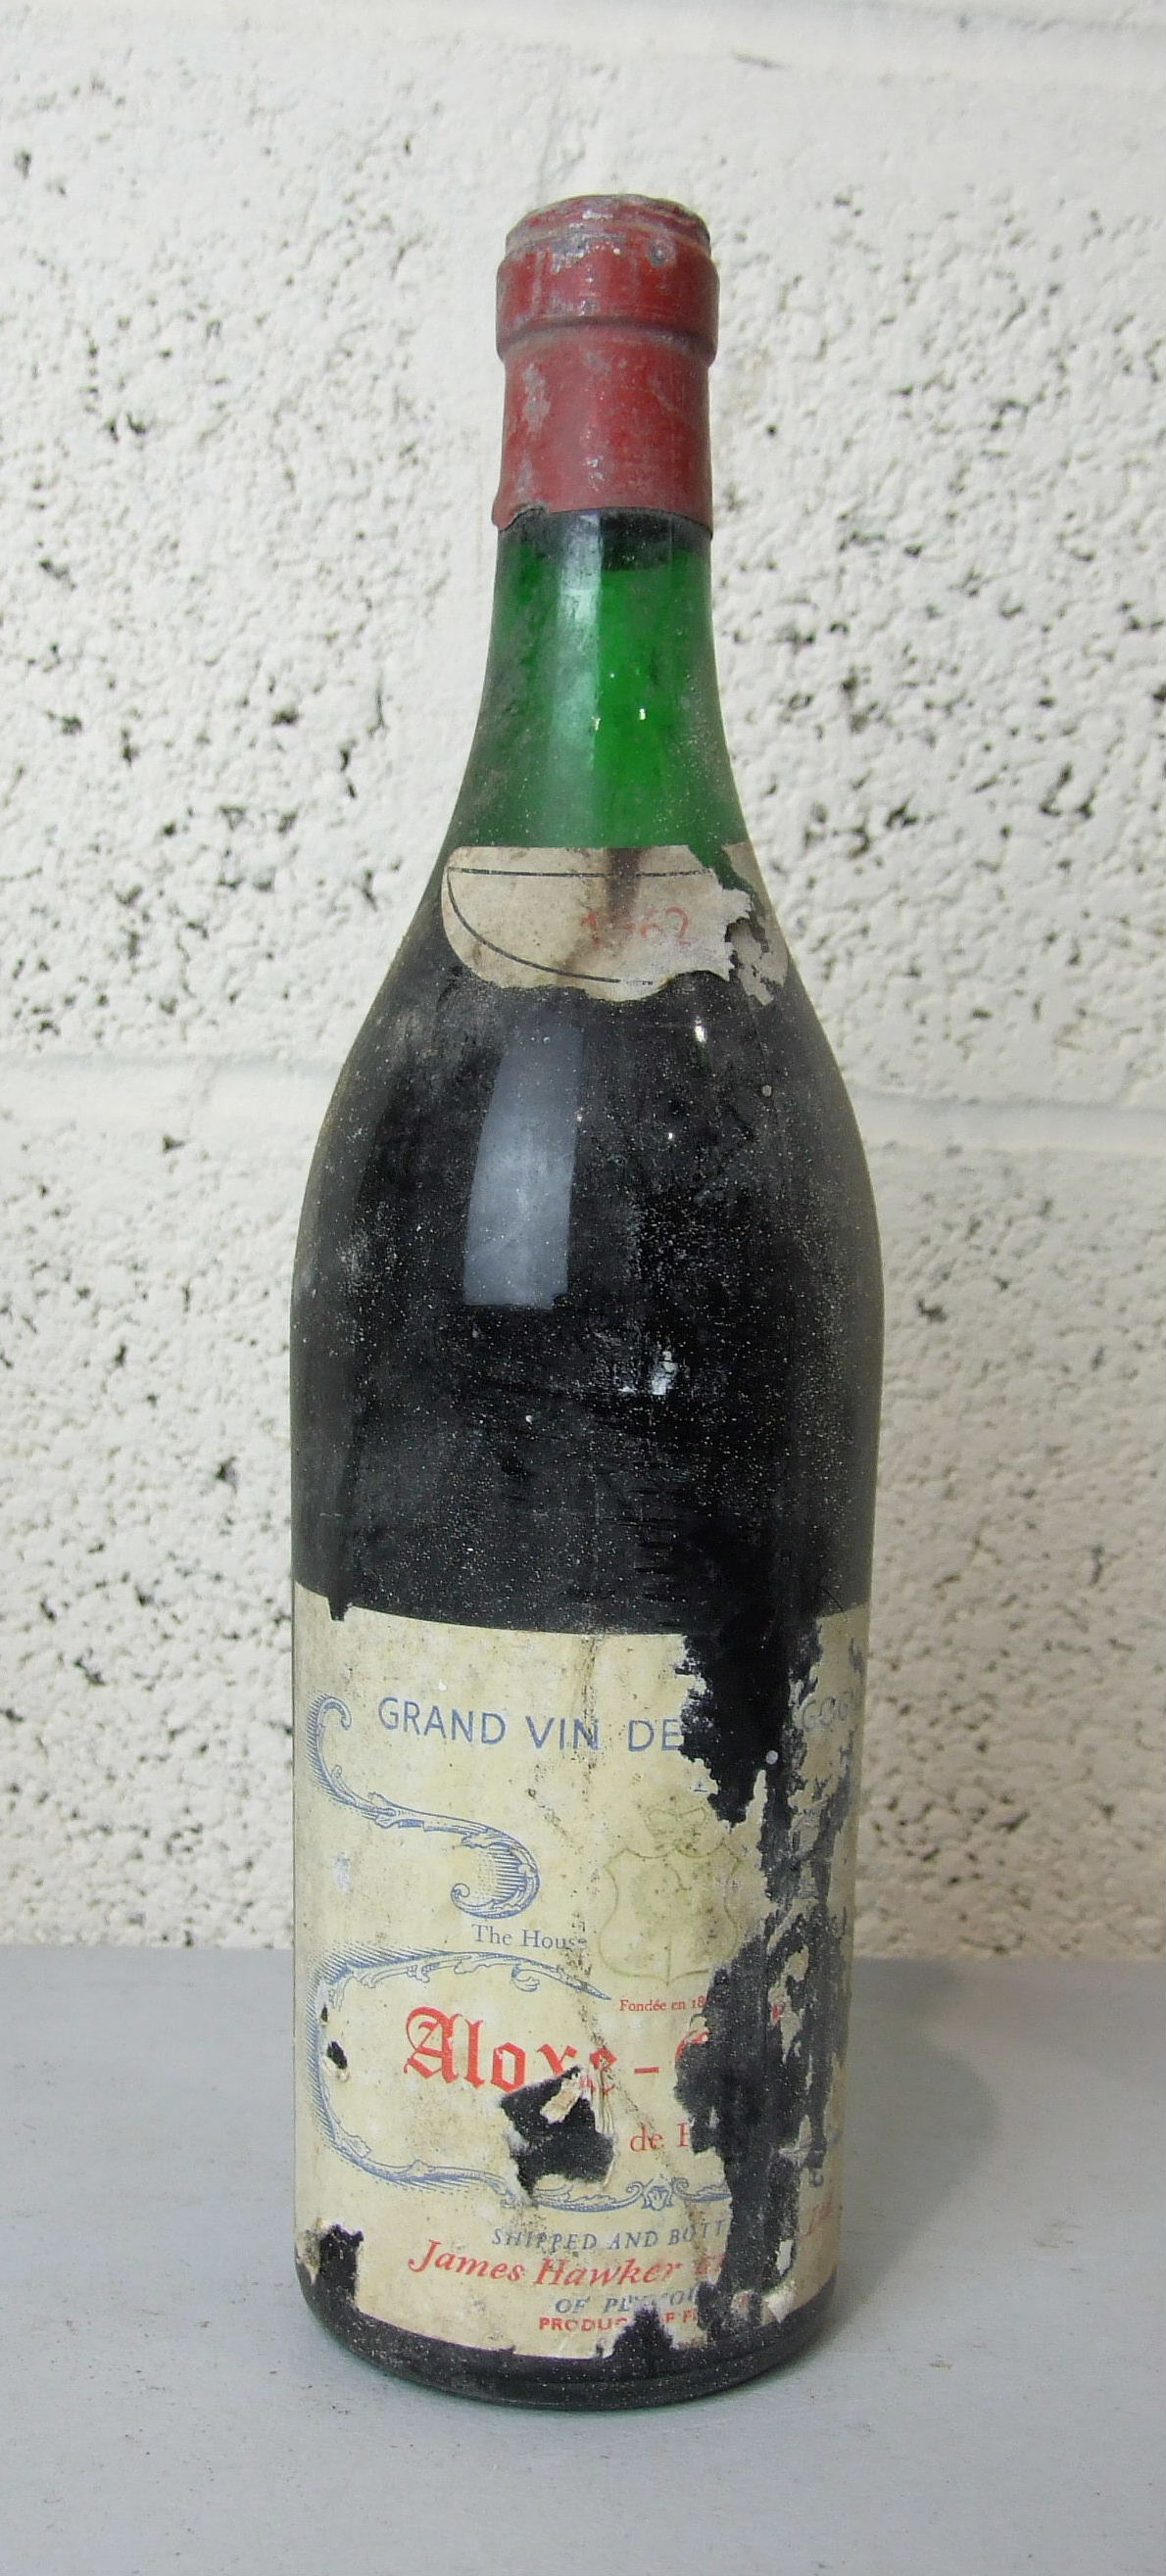 Lot 17 - France, Aloxe Corton Grand Vin de Bourgogne 1962, high shoulder, shipped and bottled by James Hawker